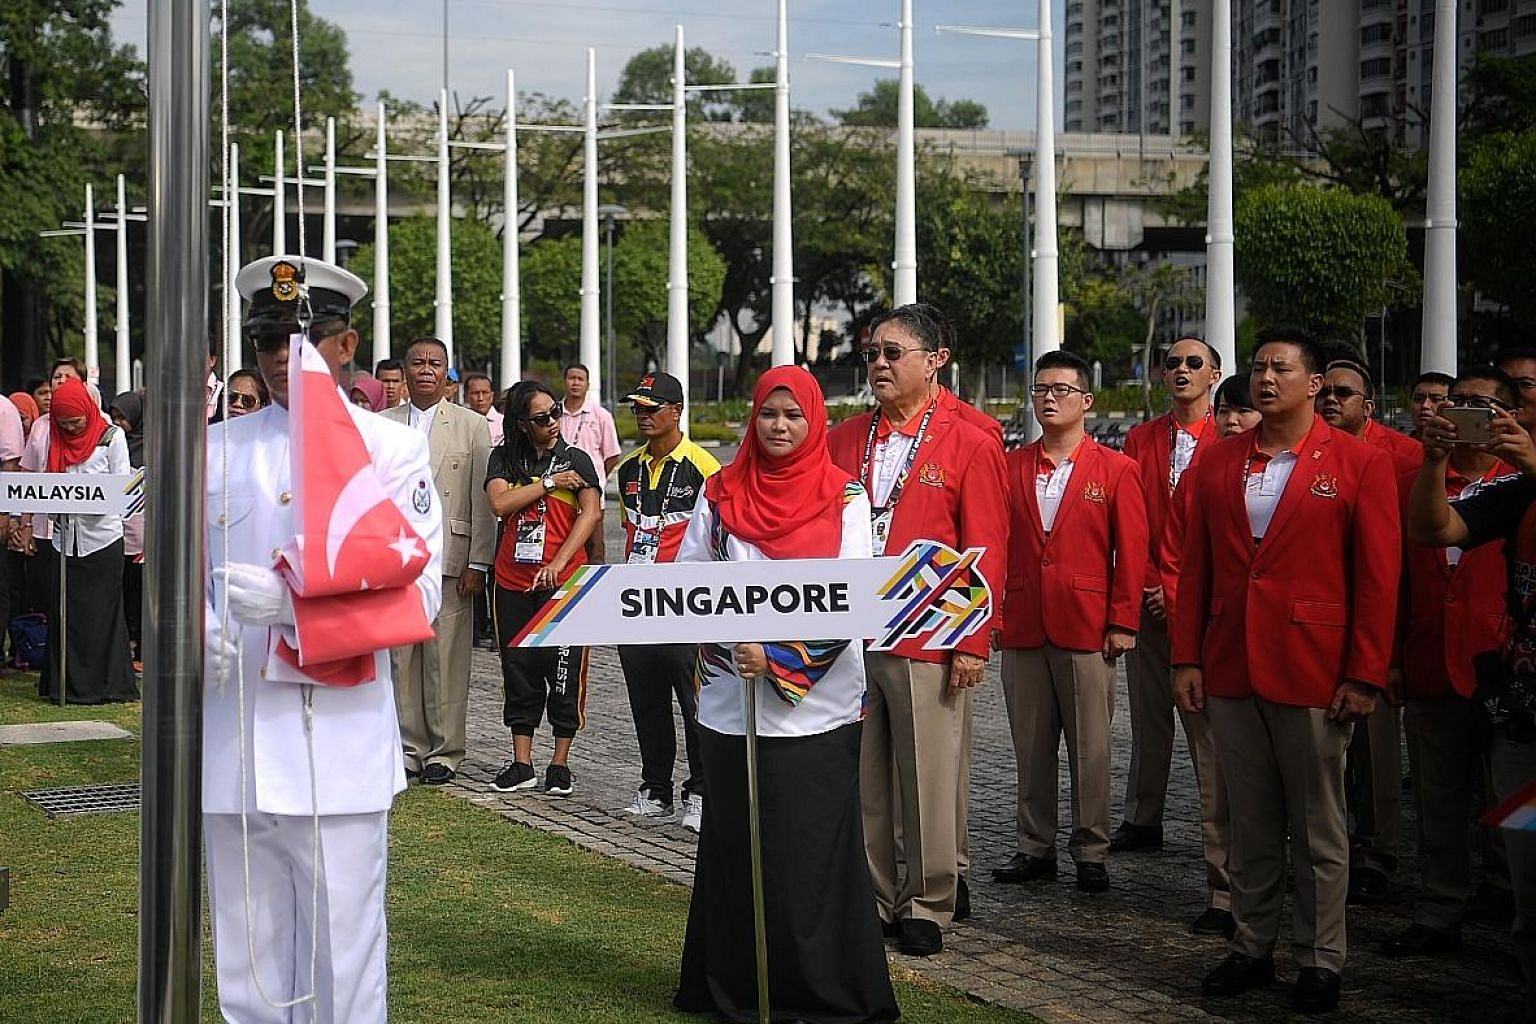 Members of Team Singapore, including chef de mission Milan Kwee (in sunglasses behind placard) sing the national anthem during yesterday's SEA Games welcome ceremony. The flag-raising for the 11 participating nations was held at the Bukit Jalil Natio